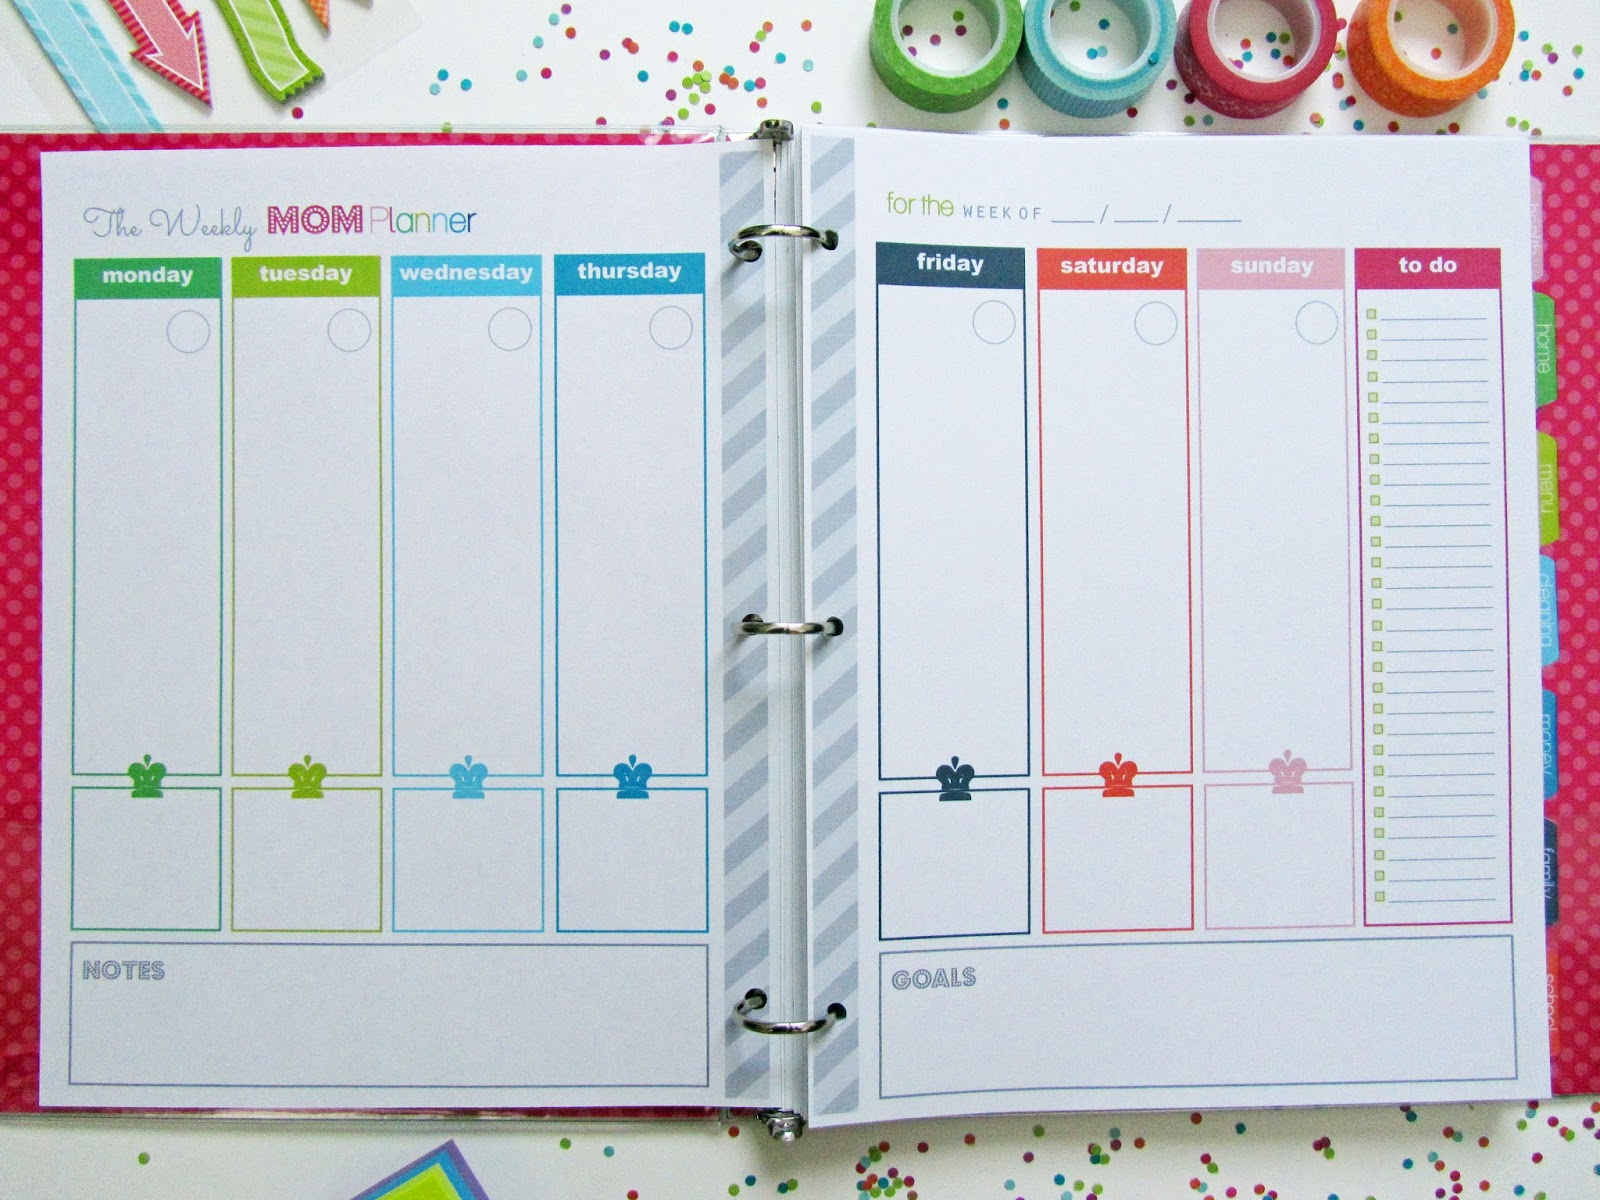 Calendar Home Planner : Clean life and home the mom planner printable